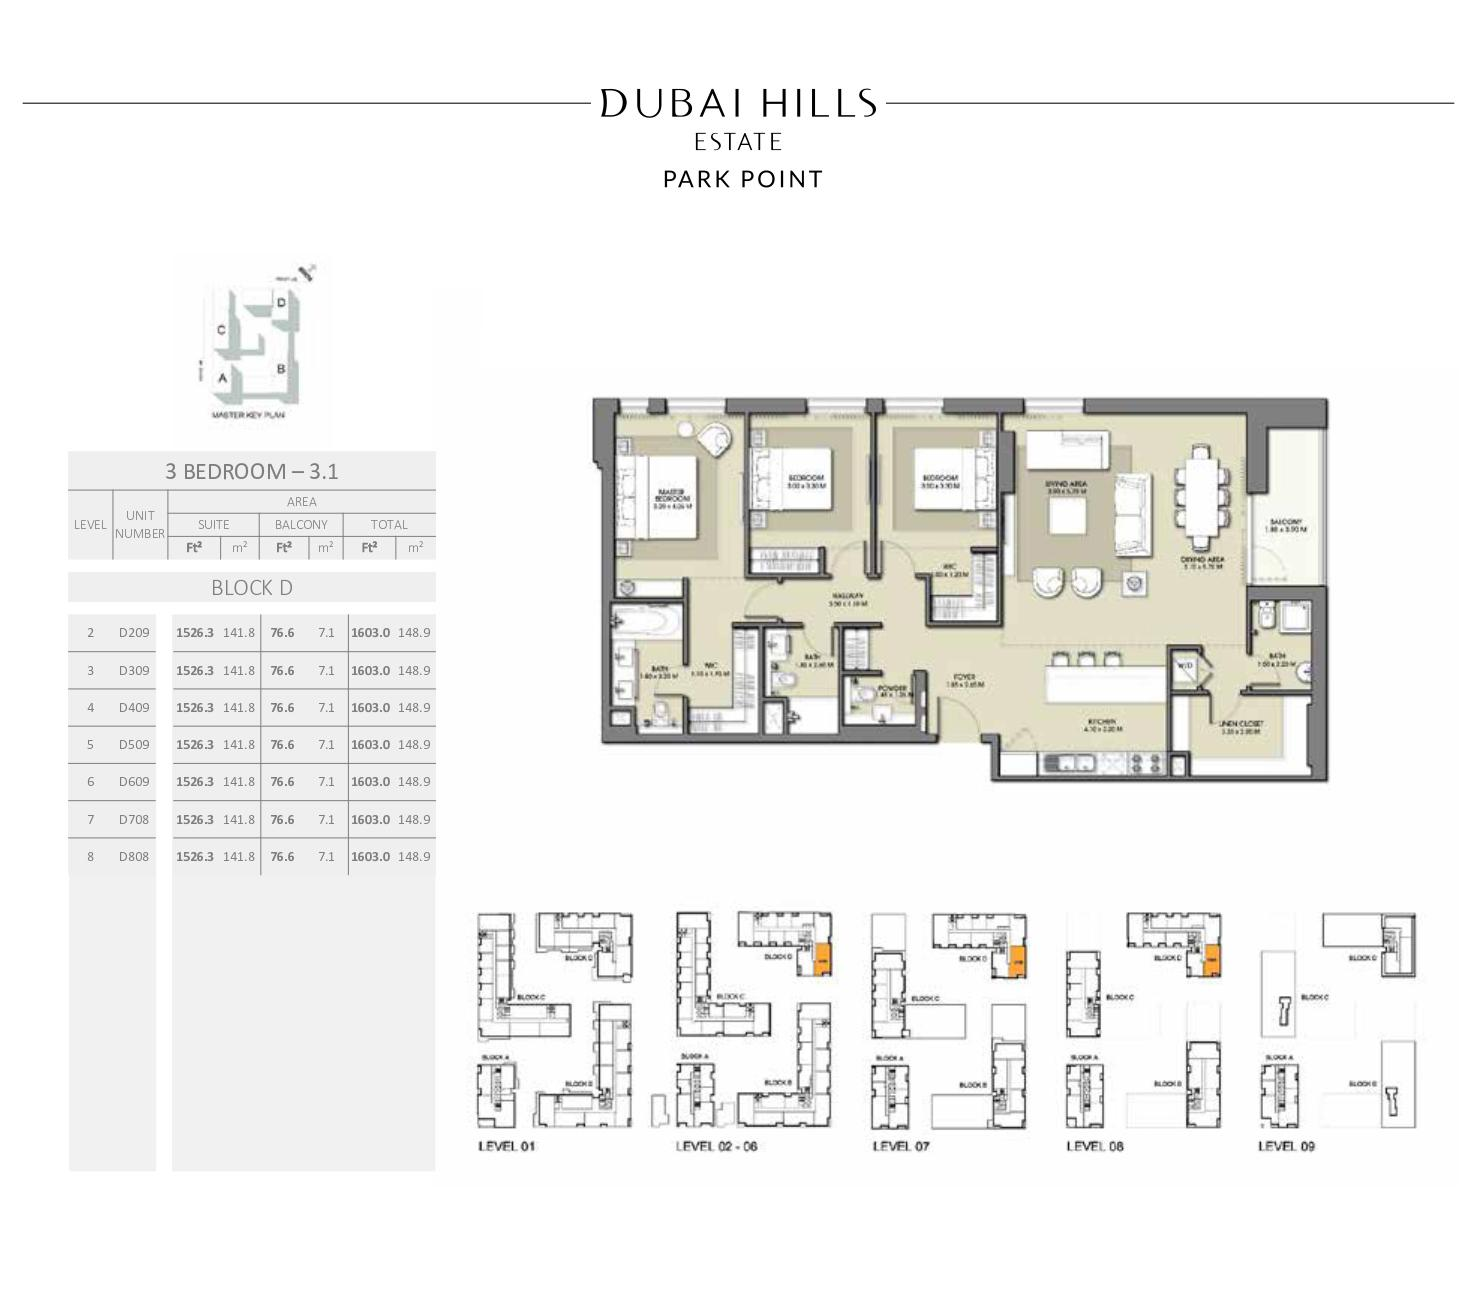 3 Bedroom Block D 1603 0sqft